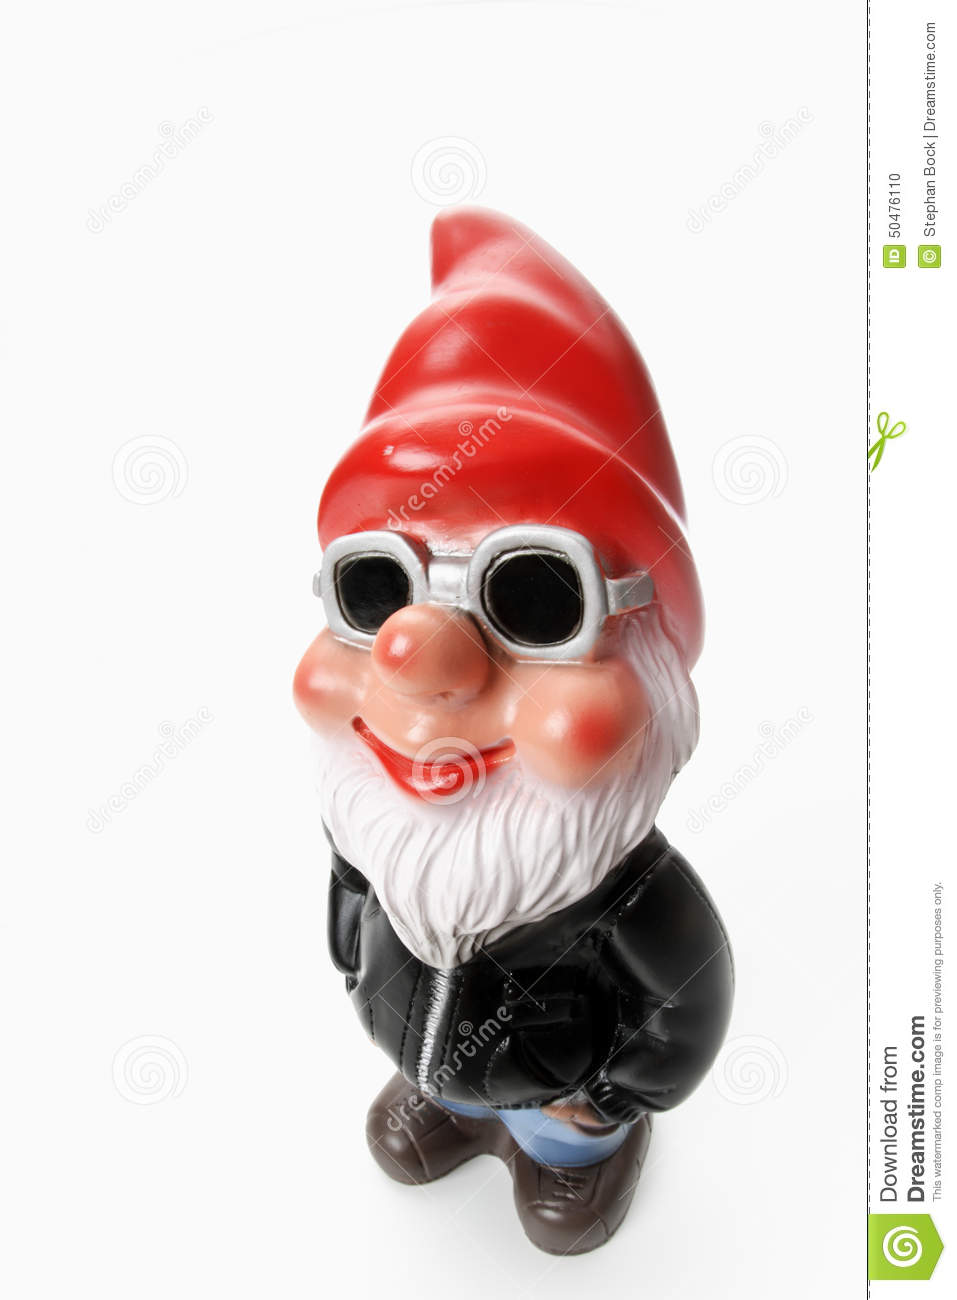 Cool Garden Gnome Wearing Sun Glasses Stock Photo - Image: 50476110